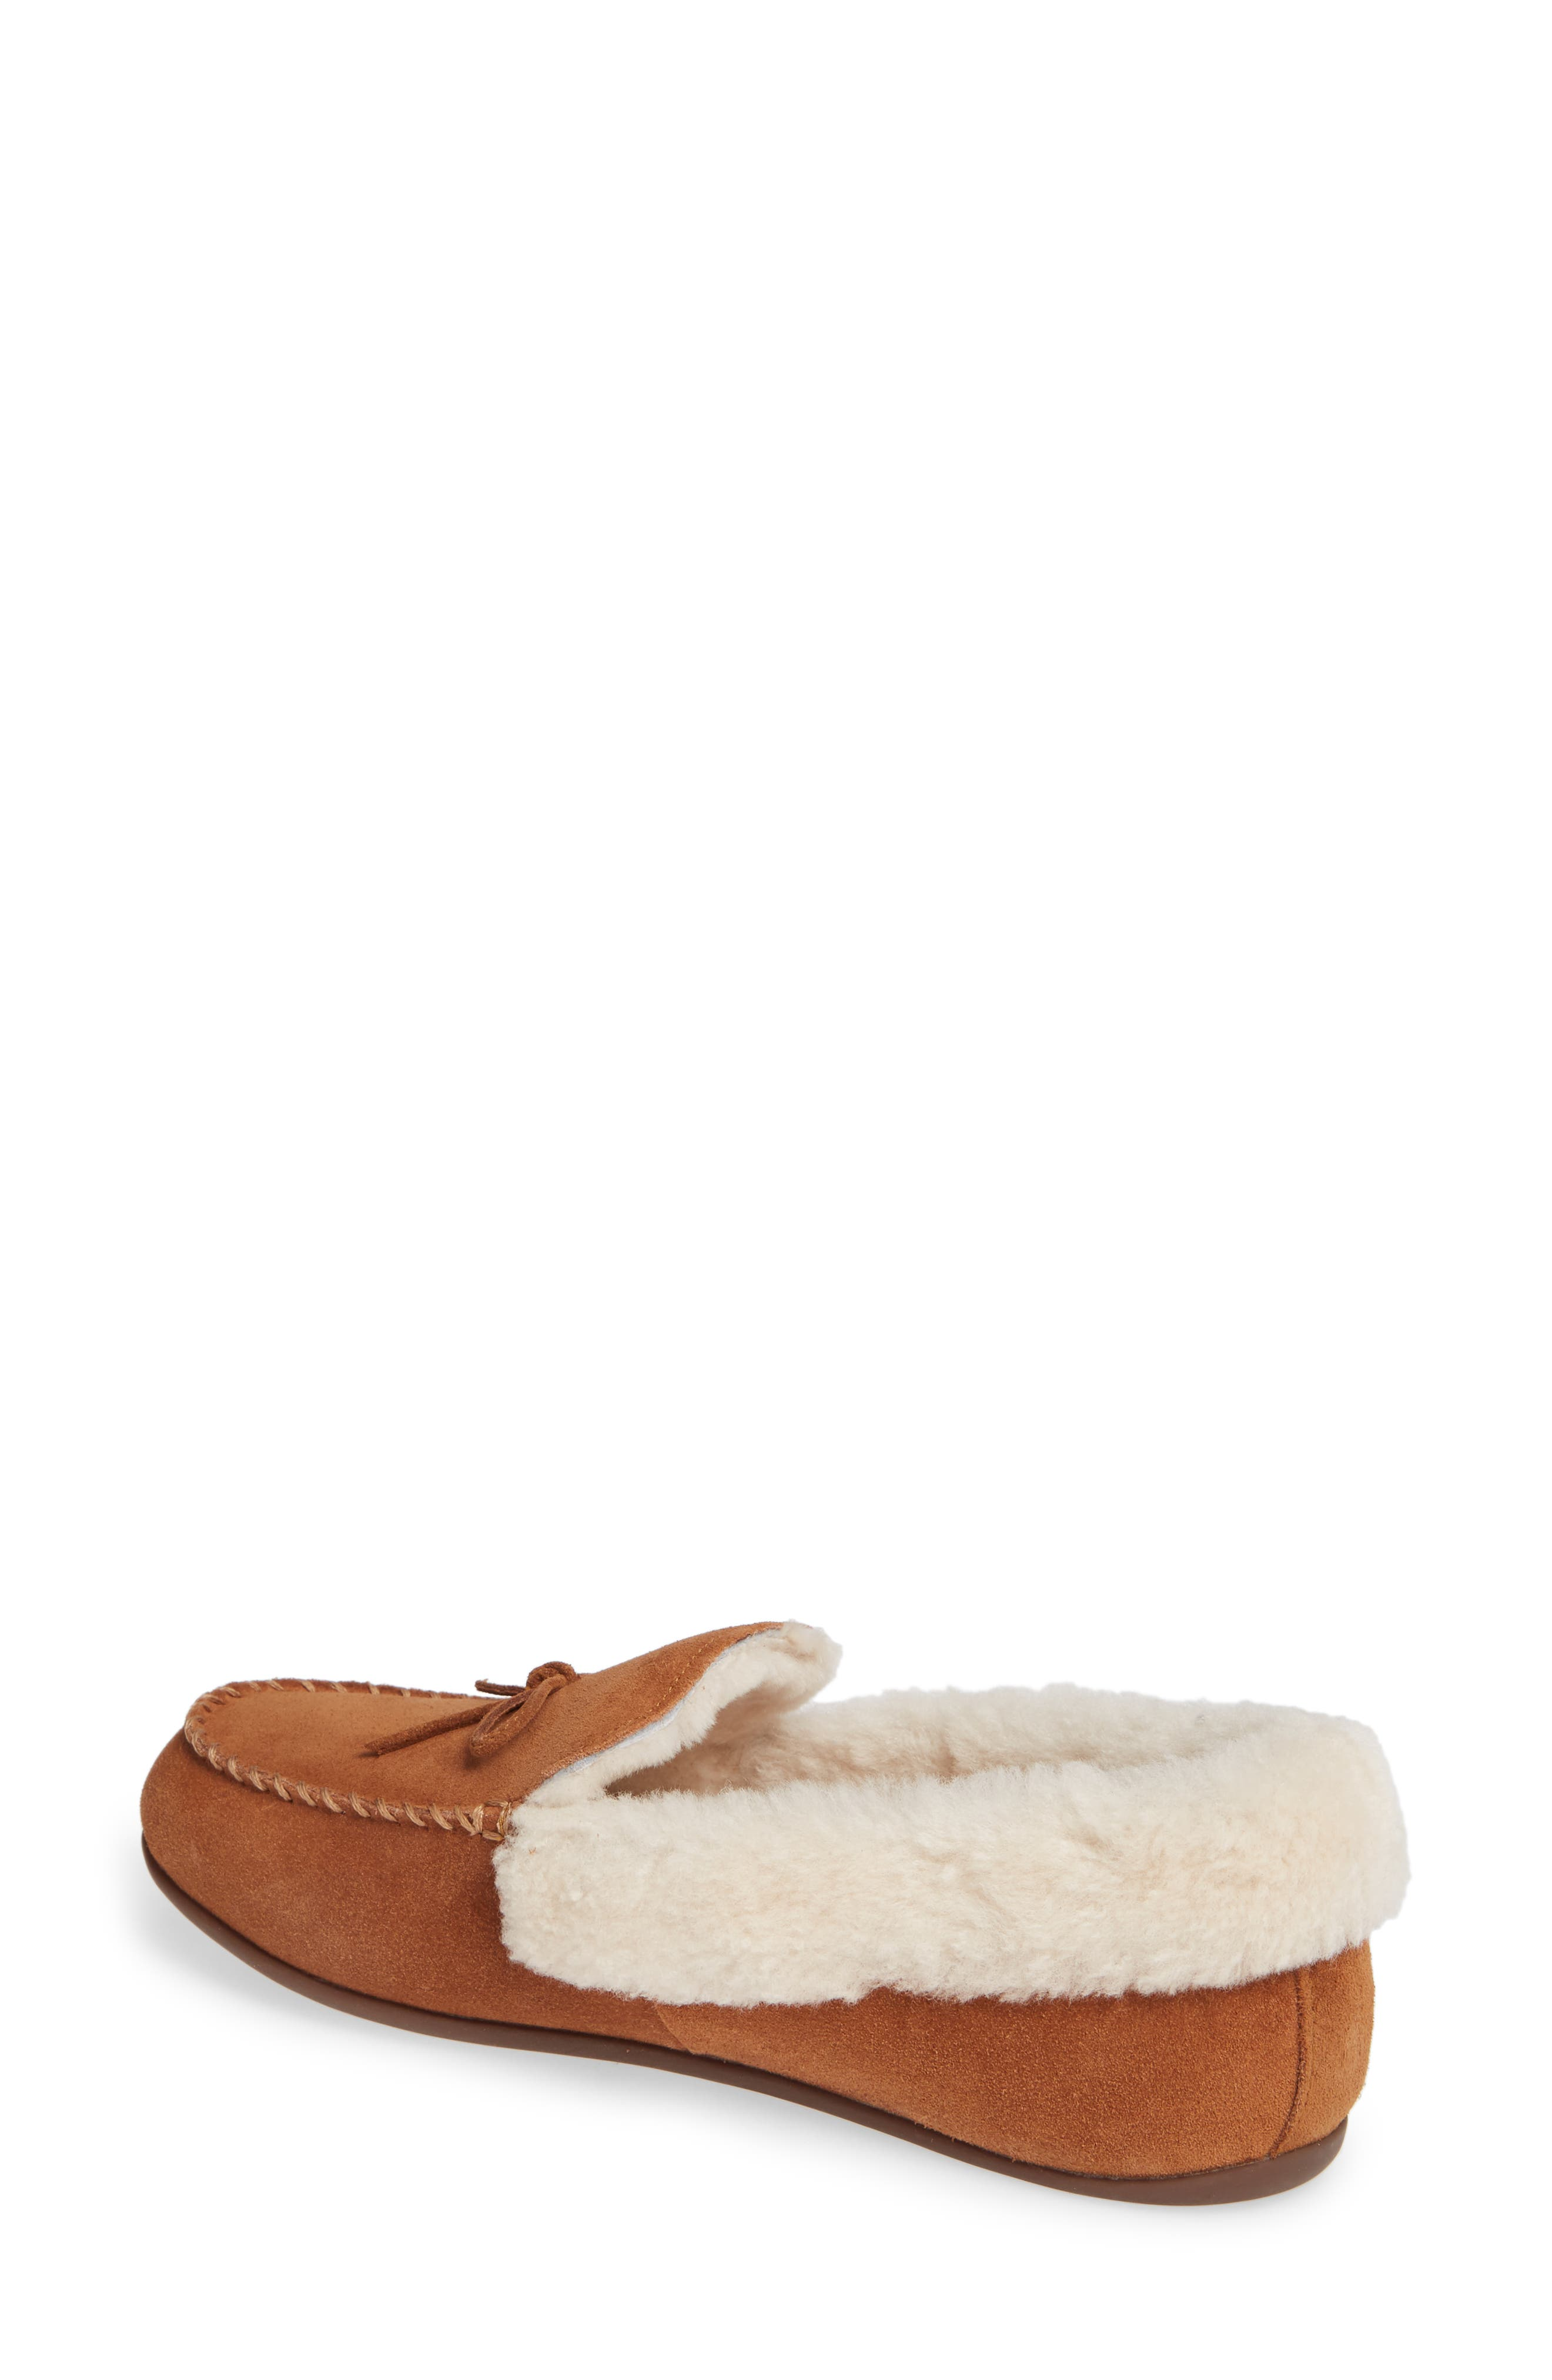 Clara Genuine Shearling Lined Moccasin,                             Alternate thumbnail 2, color,                             TUMBLED TAN SUEDE